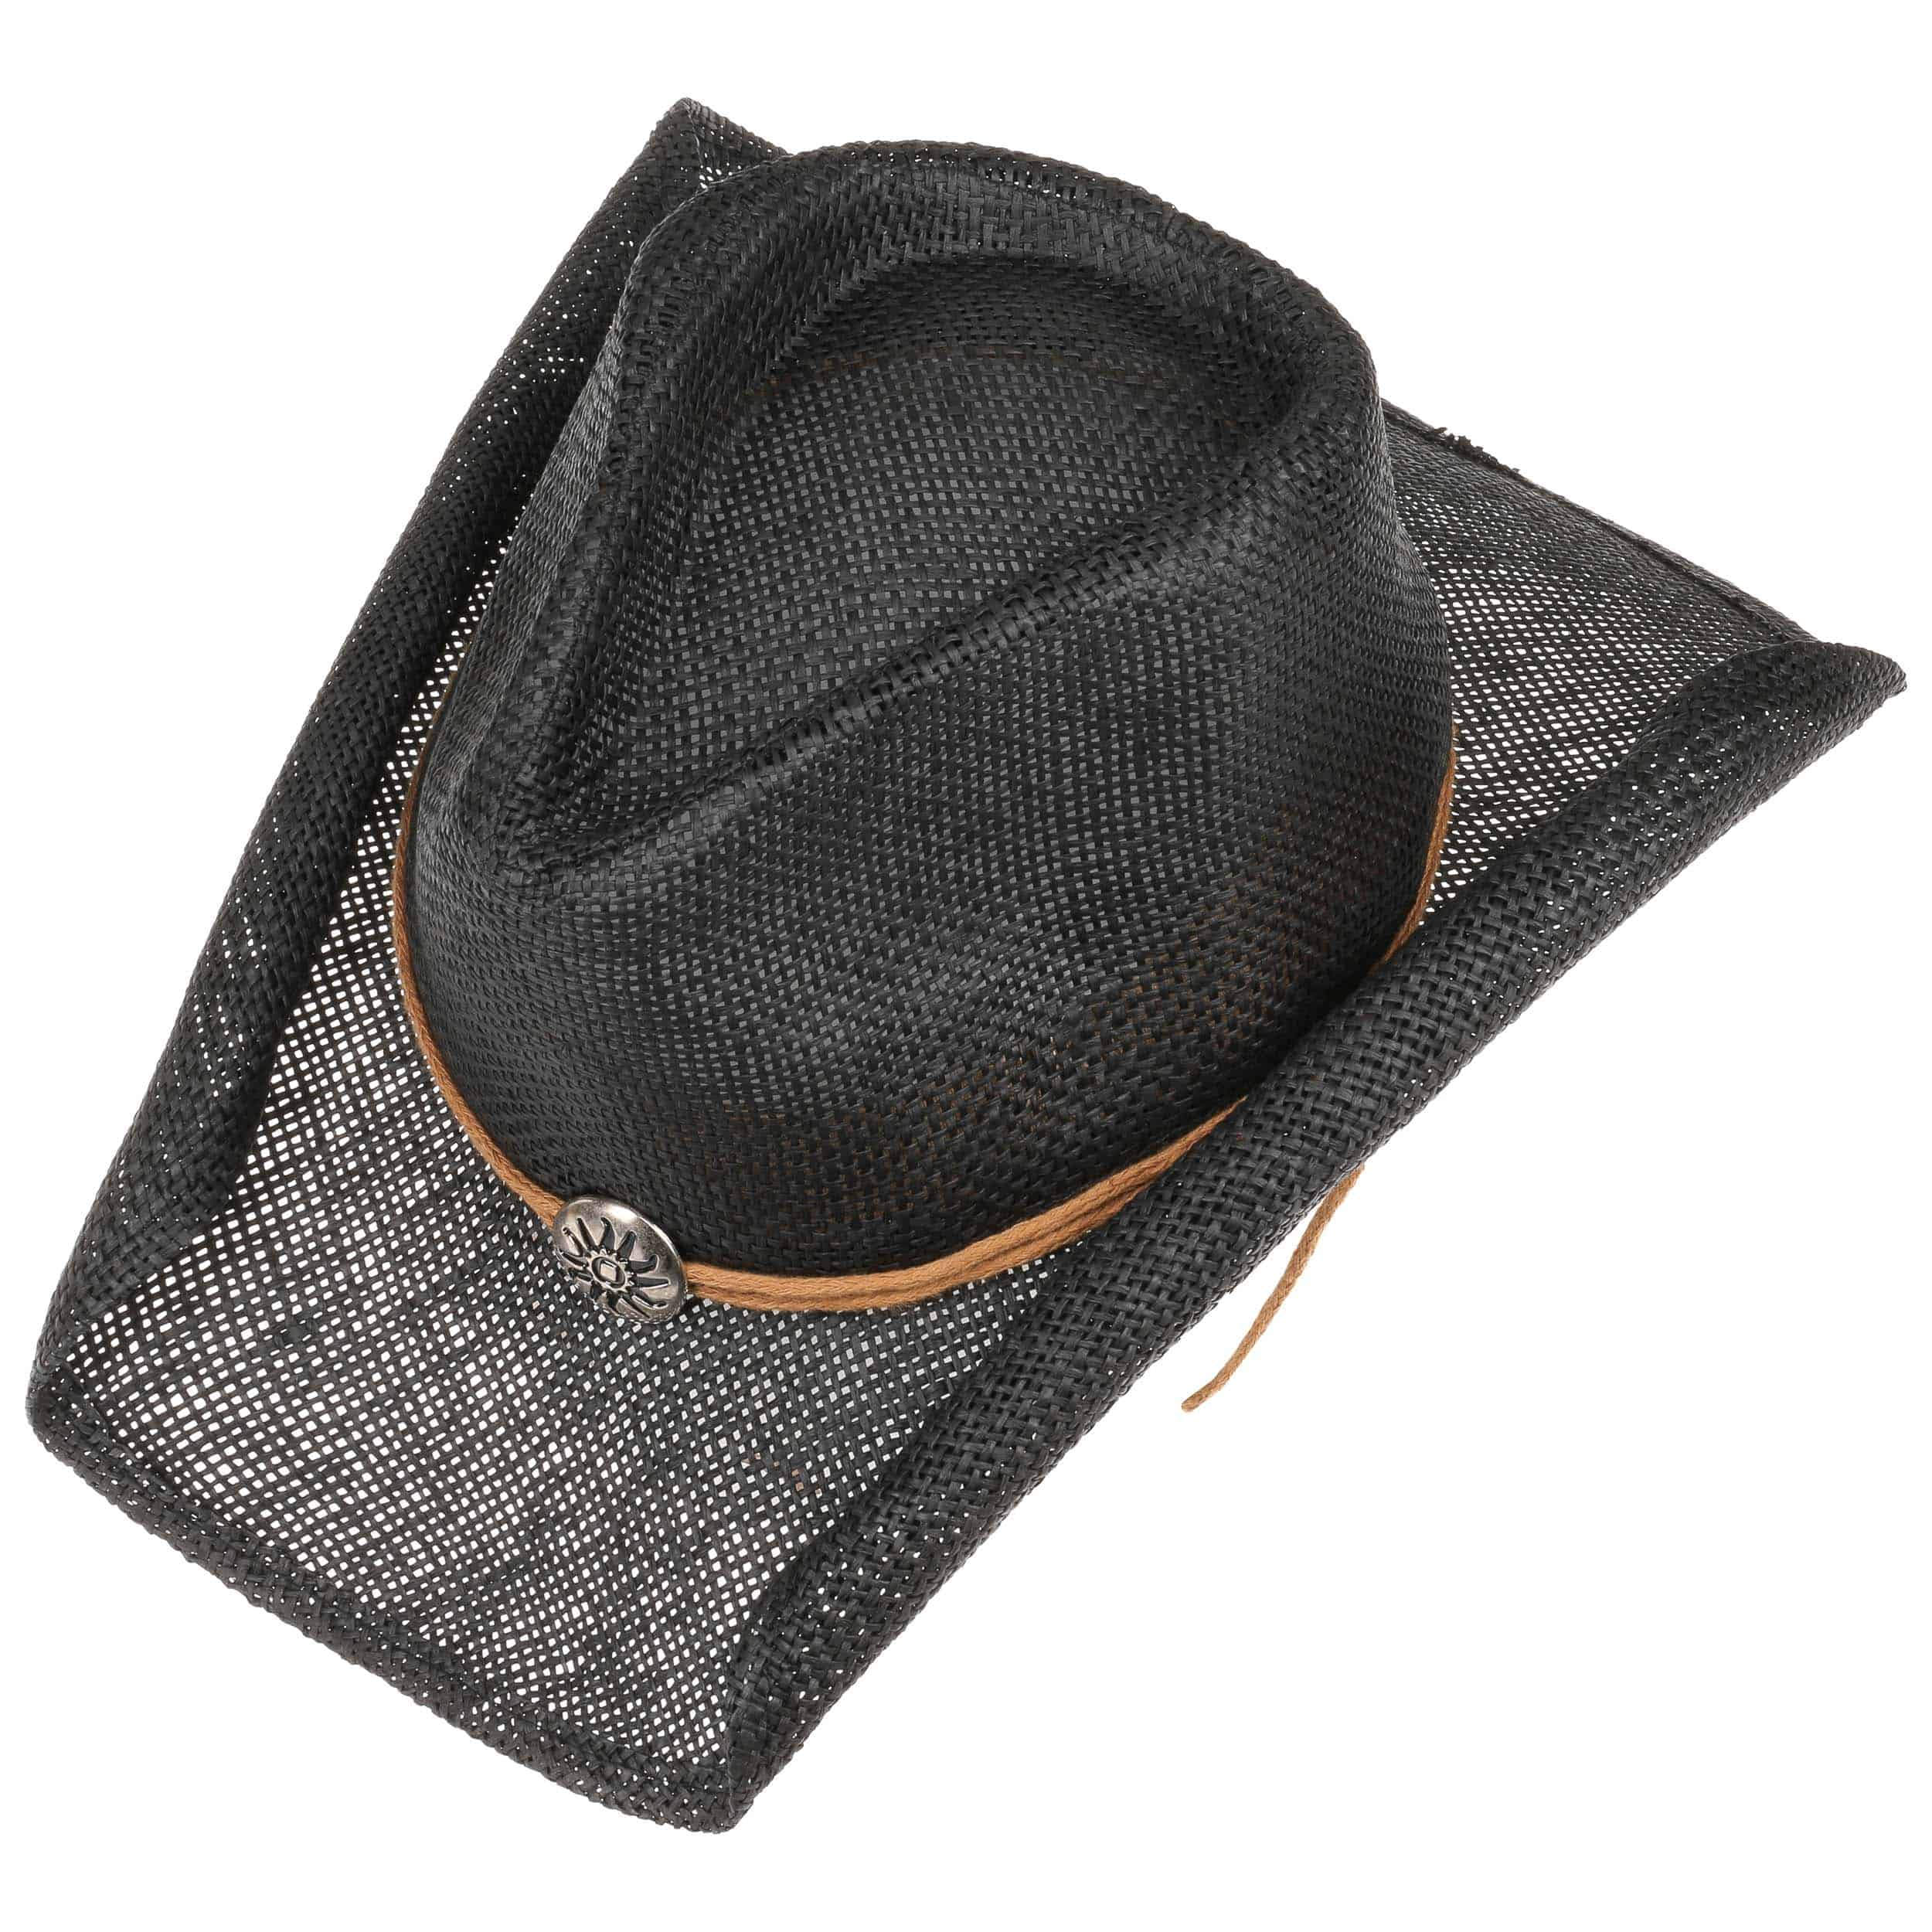 ... Yeehaw Kids Cowboy Hat by Lipodo - black 1 ... 485e2be739a9